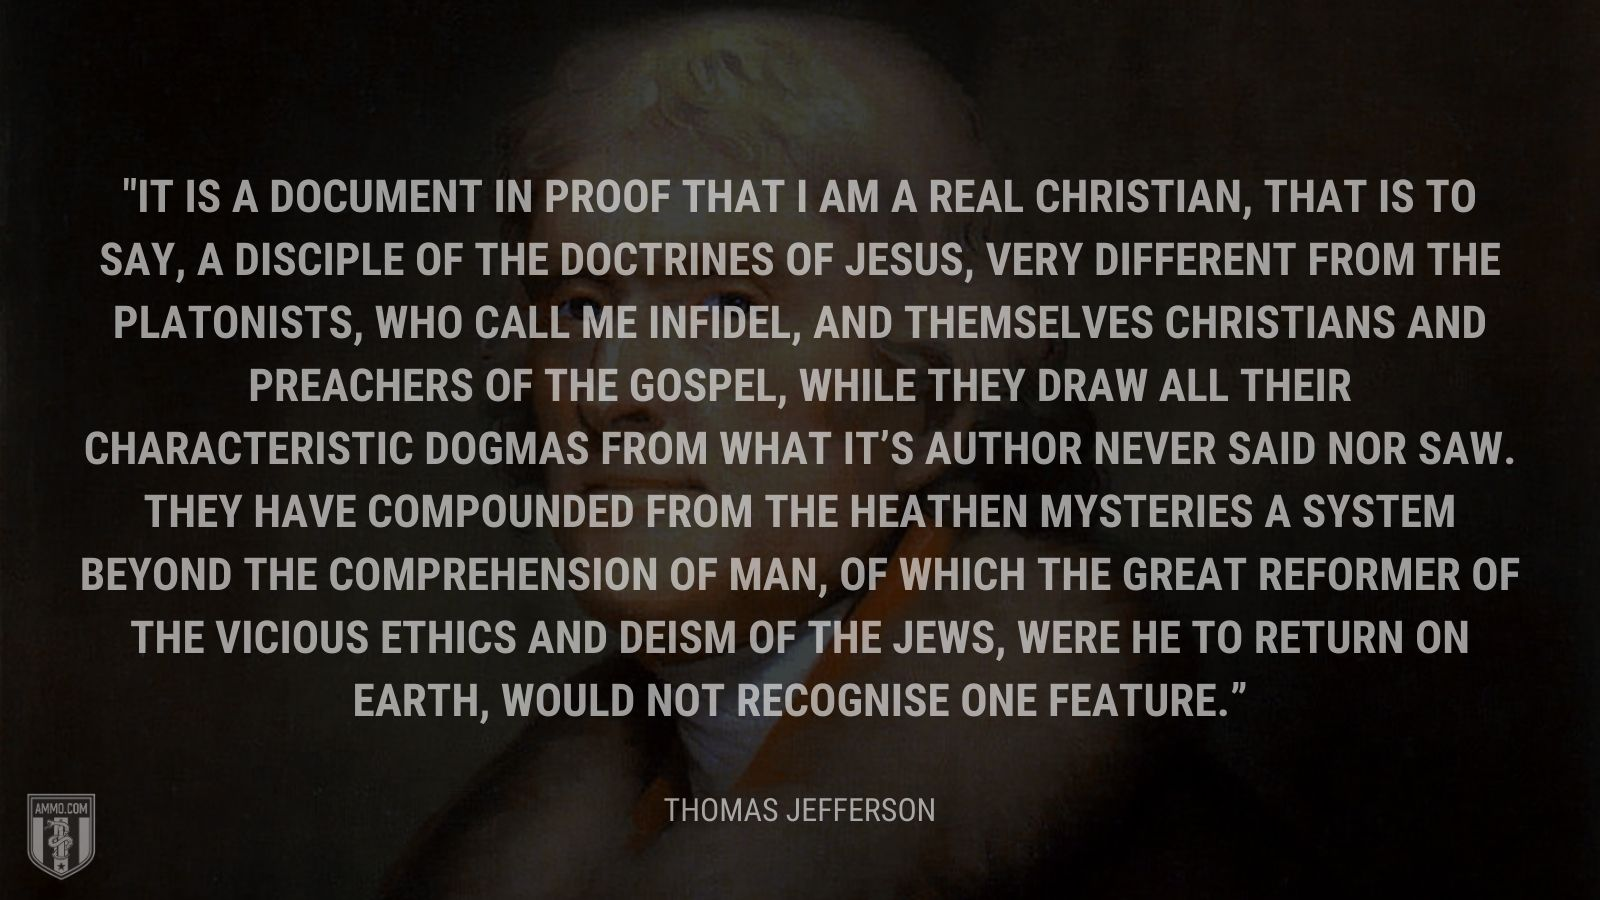 """It is a document in proof that I am a real Christian, that is to say, a disciple of the doctrines of Jesus, very different from the Platonists, who call me infidel, and themselves Christians and preachers of the gospel, while they draw all their characteristic dogmas from what it's Author never said nor saw. They have compounded from the heathen mysteries a system beyond the comprehension of man, of which the great reformer of the vicious ethics and deism of the Jews, were he to return on earth, would not recognise one feature."" - Thomas Jefferson"